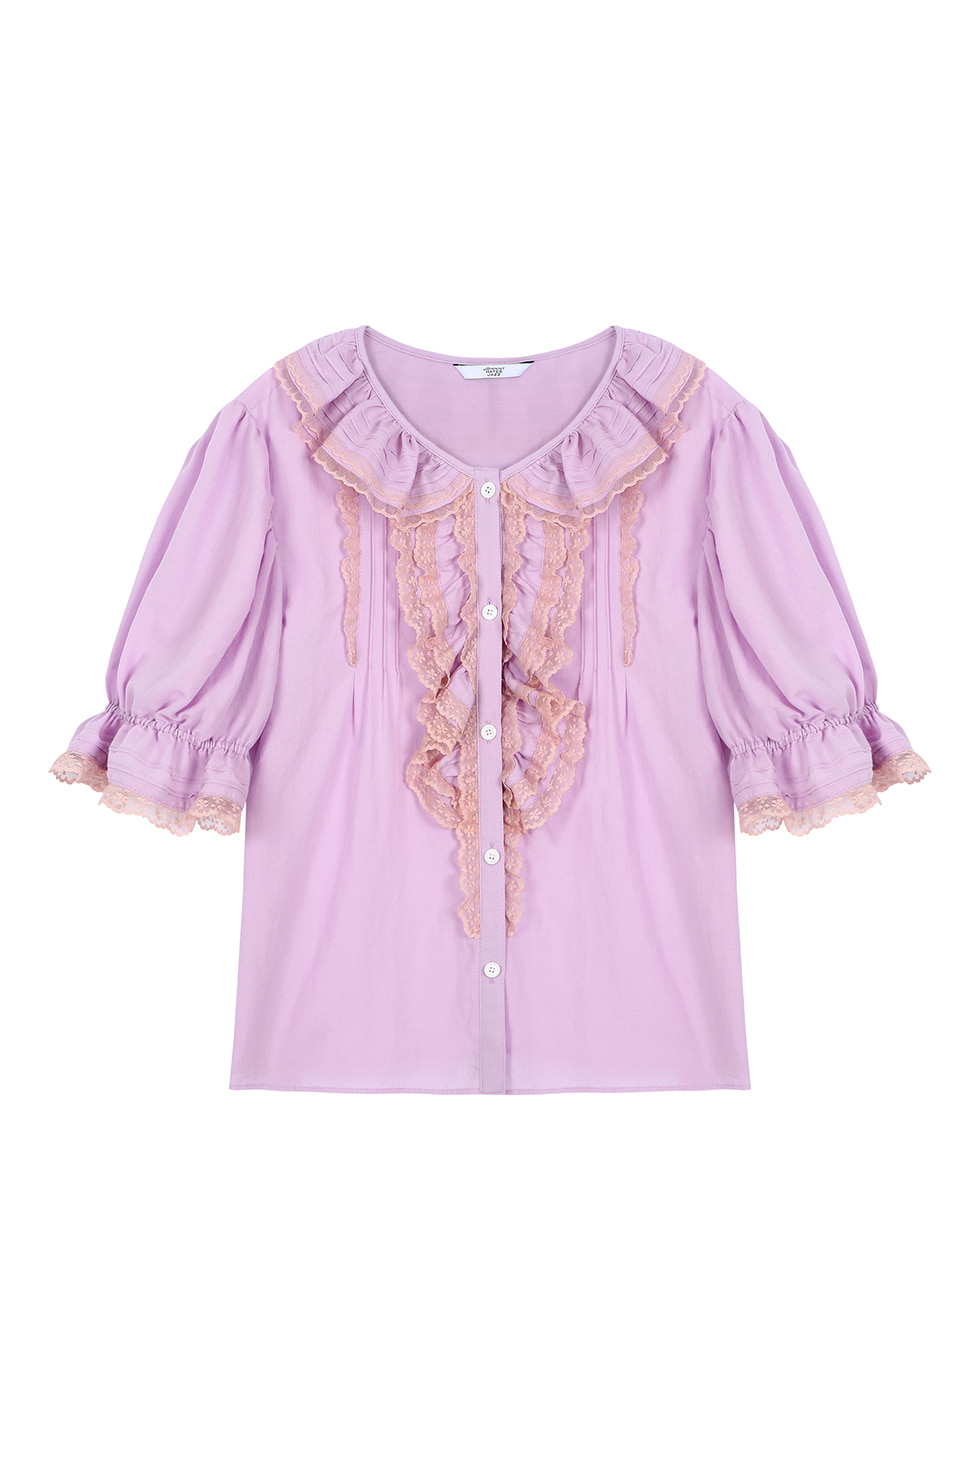 LACE TUCK COTTON BLOUSE - PURPLE